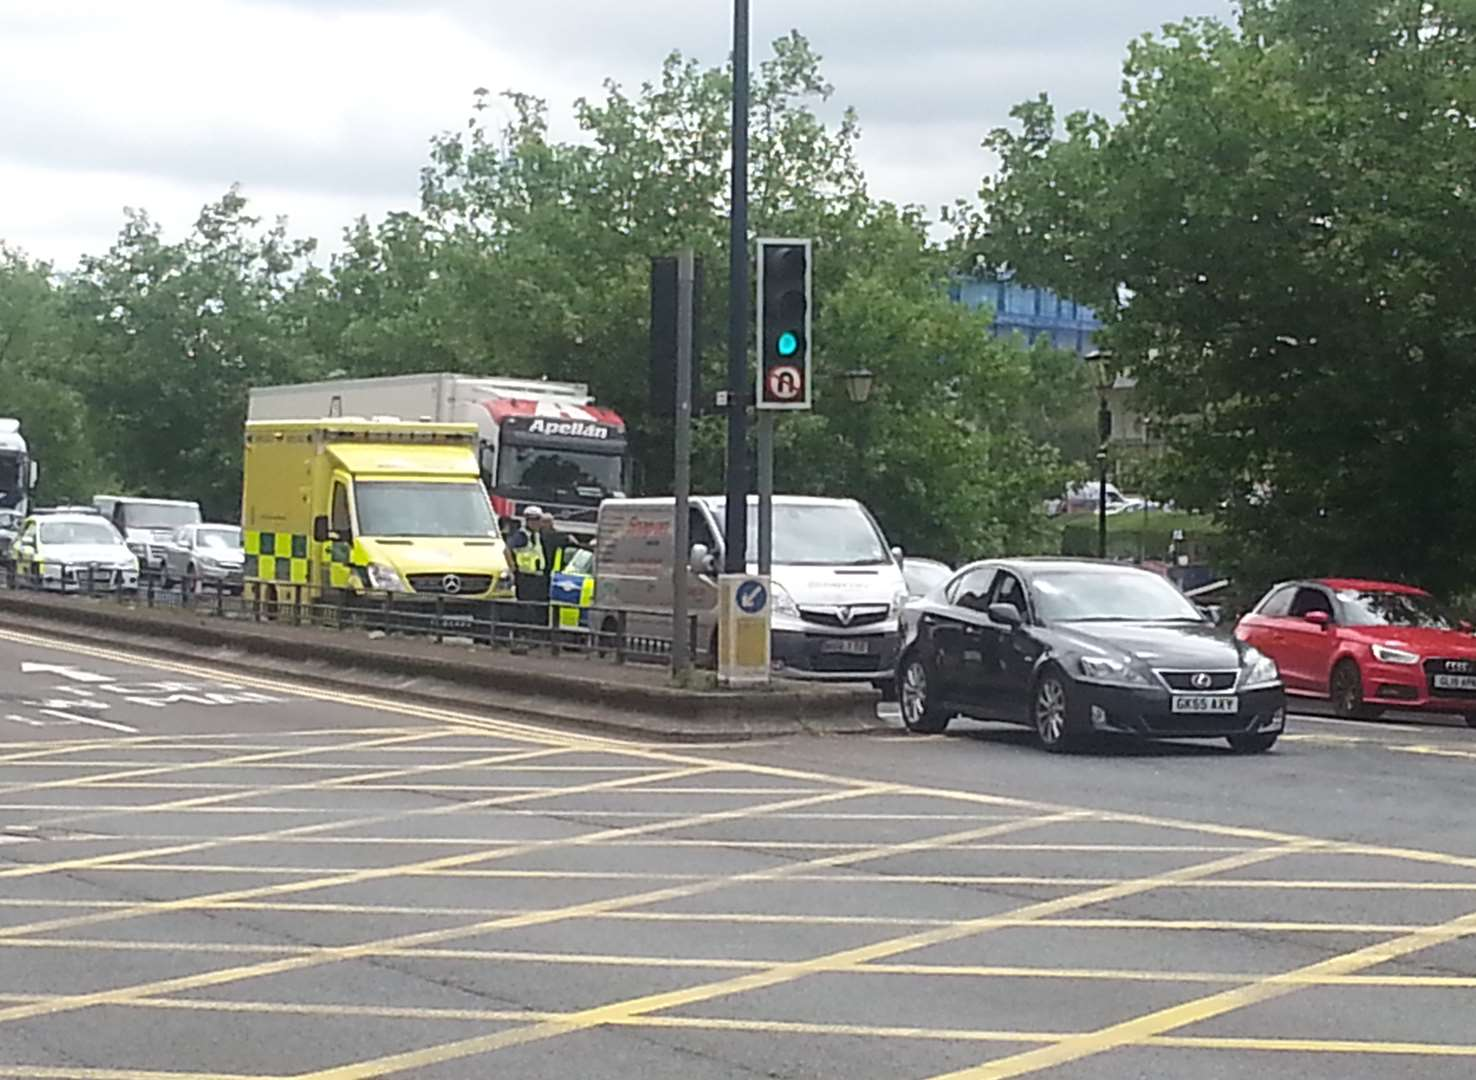 Collision in town centre